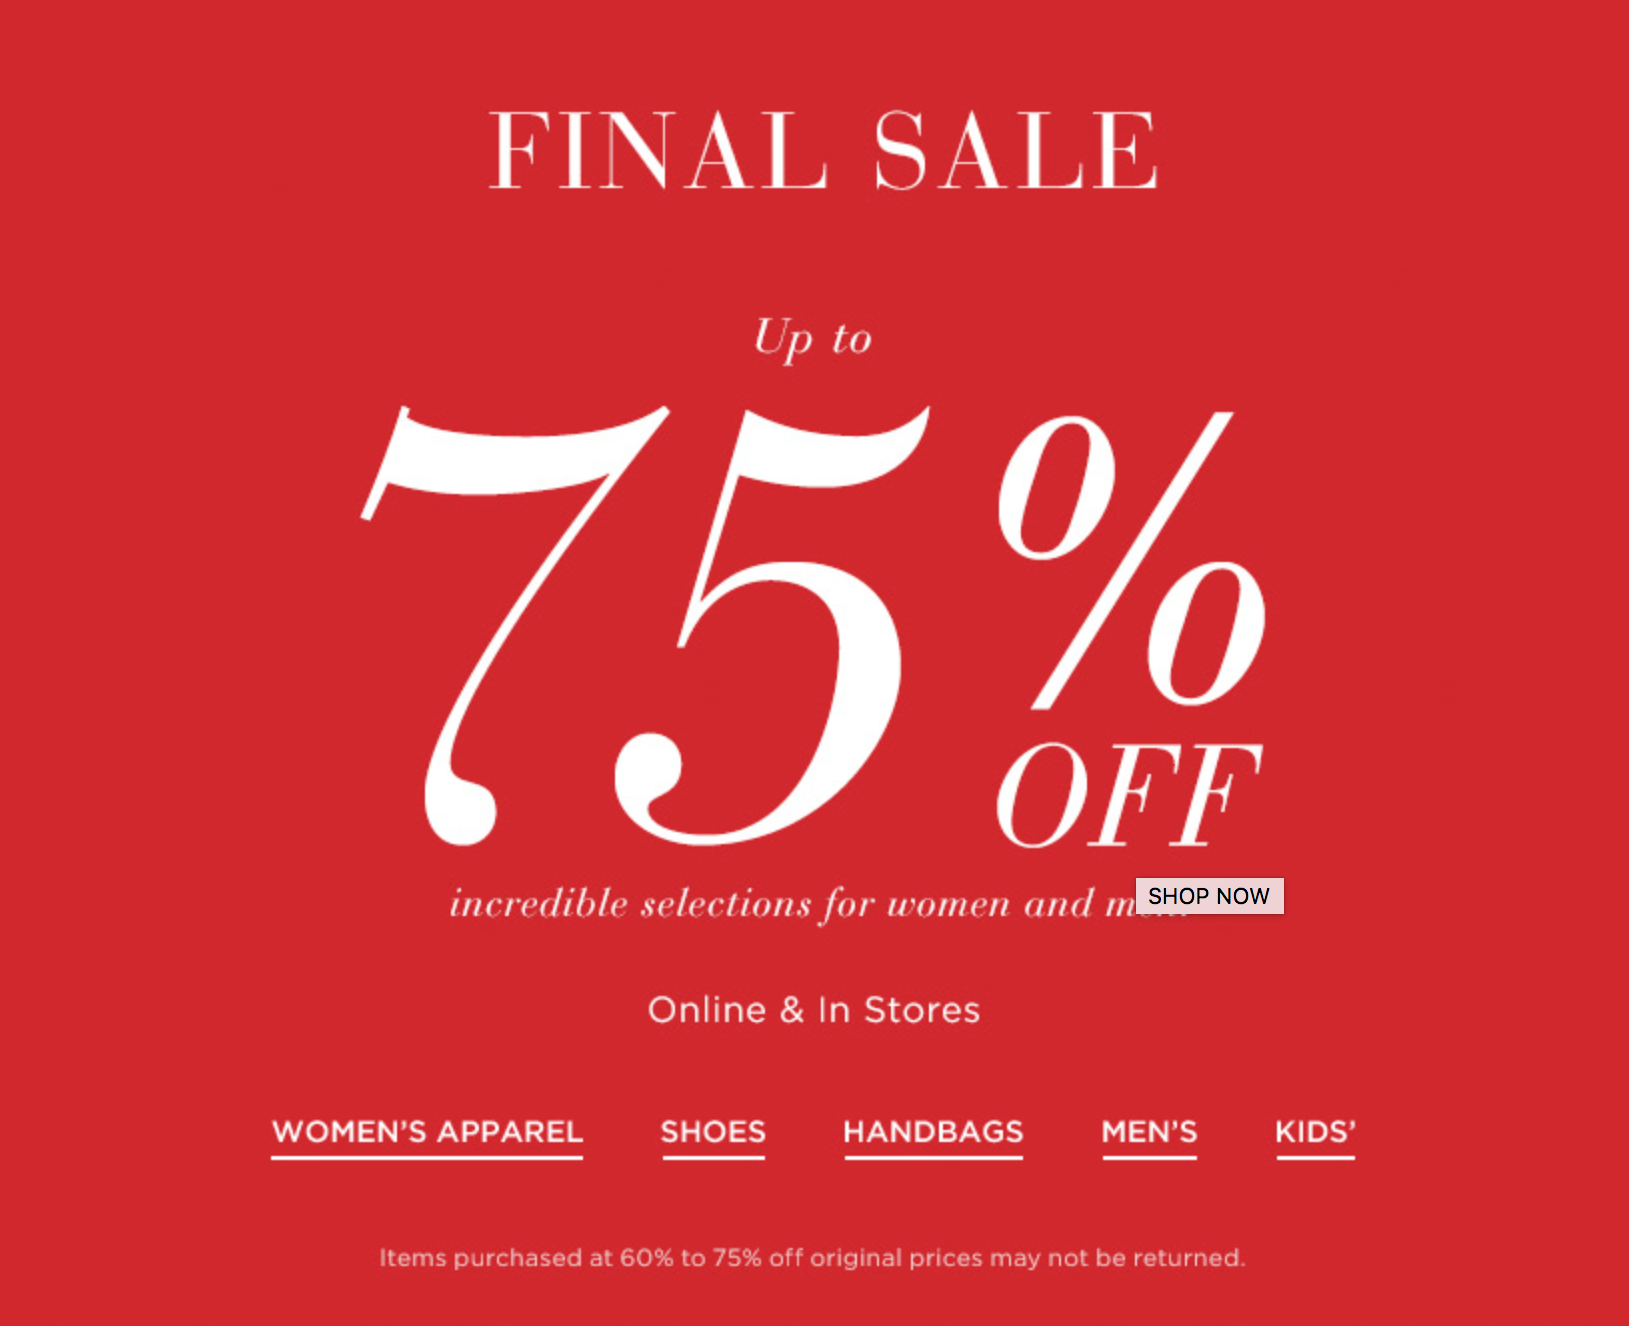 Saks Fifth Avenue: sale up to 75% off